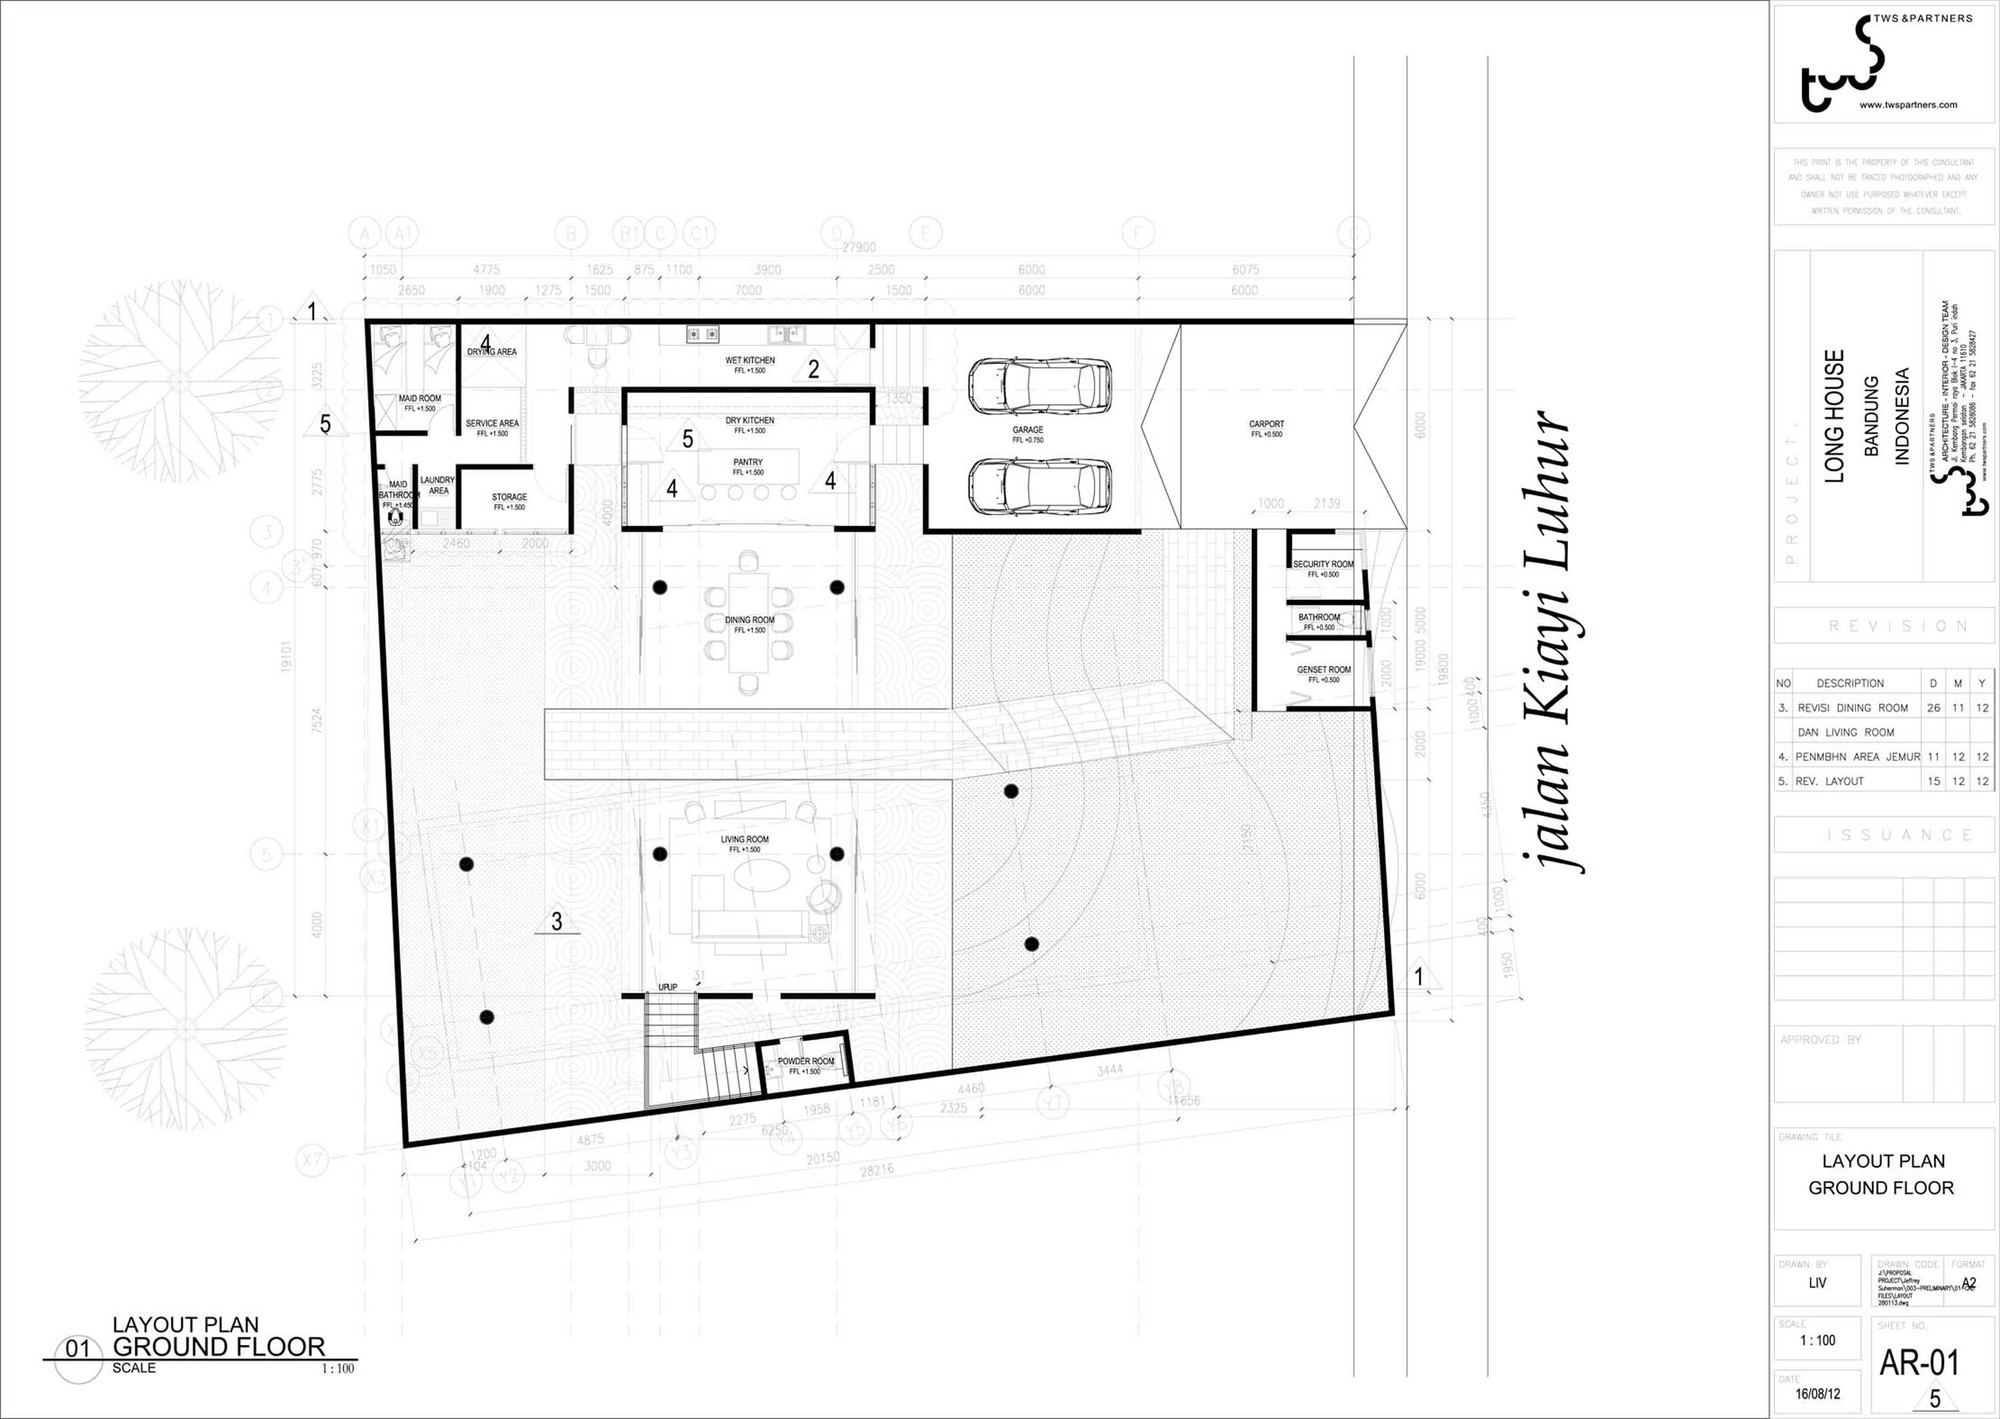 Ground floor plan of the Long House